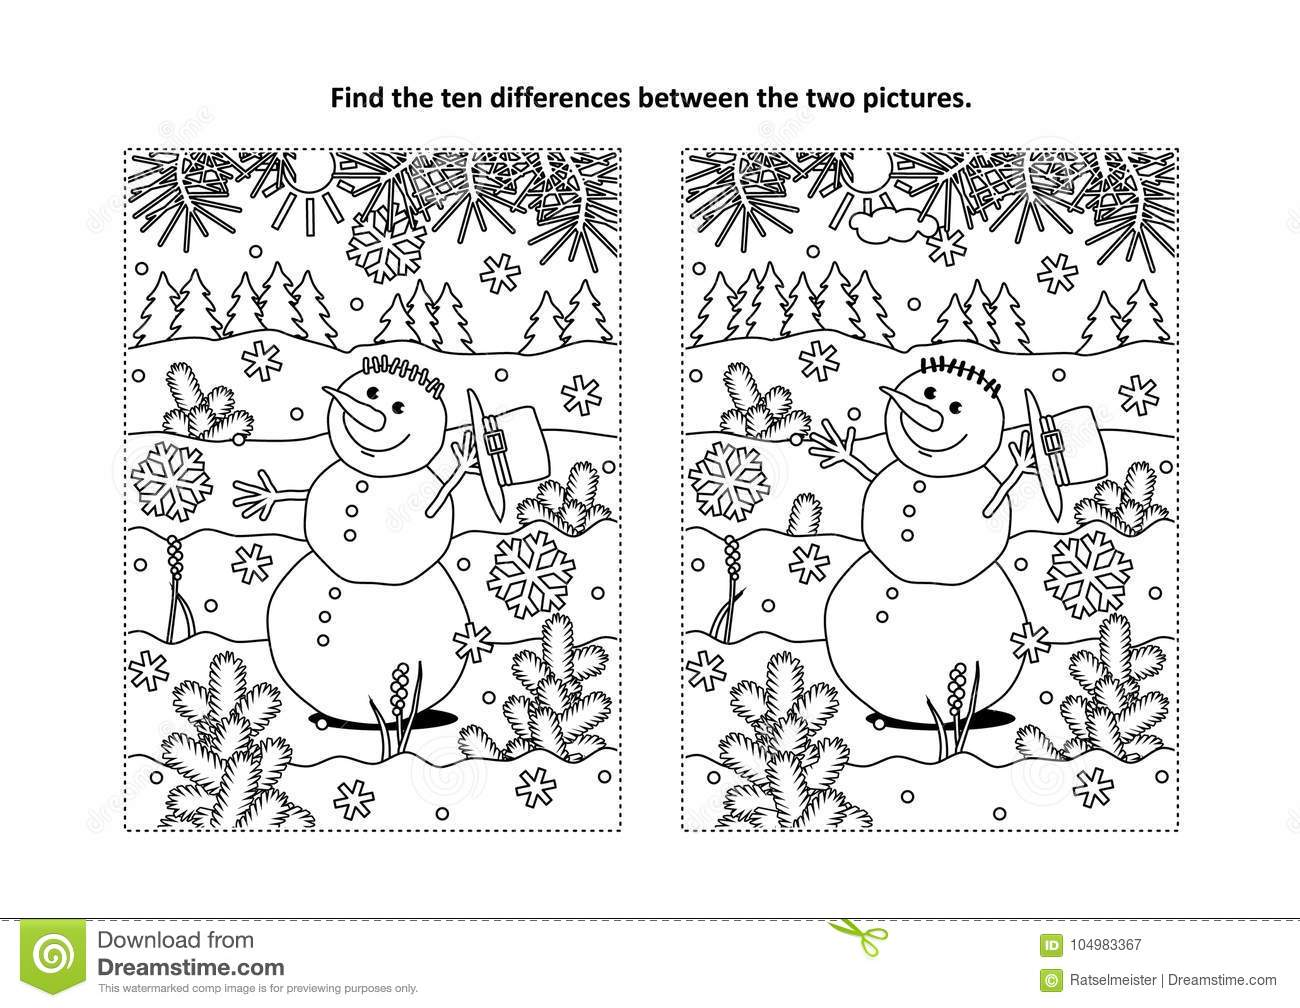 Find The Differences Visual Puzzle And Coloring Page With Snowman Stock Vector Illustration Of Themed Snowman 104983367